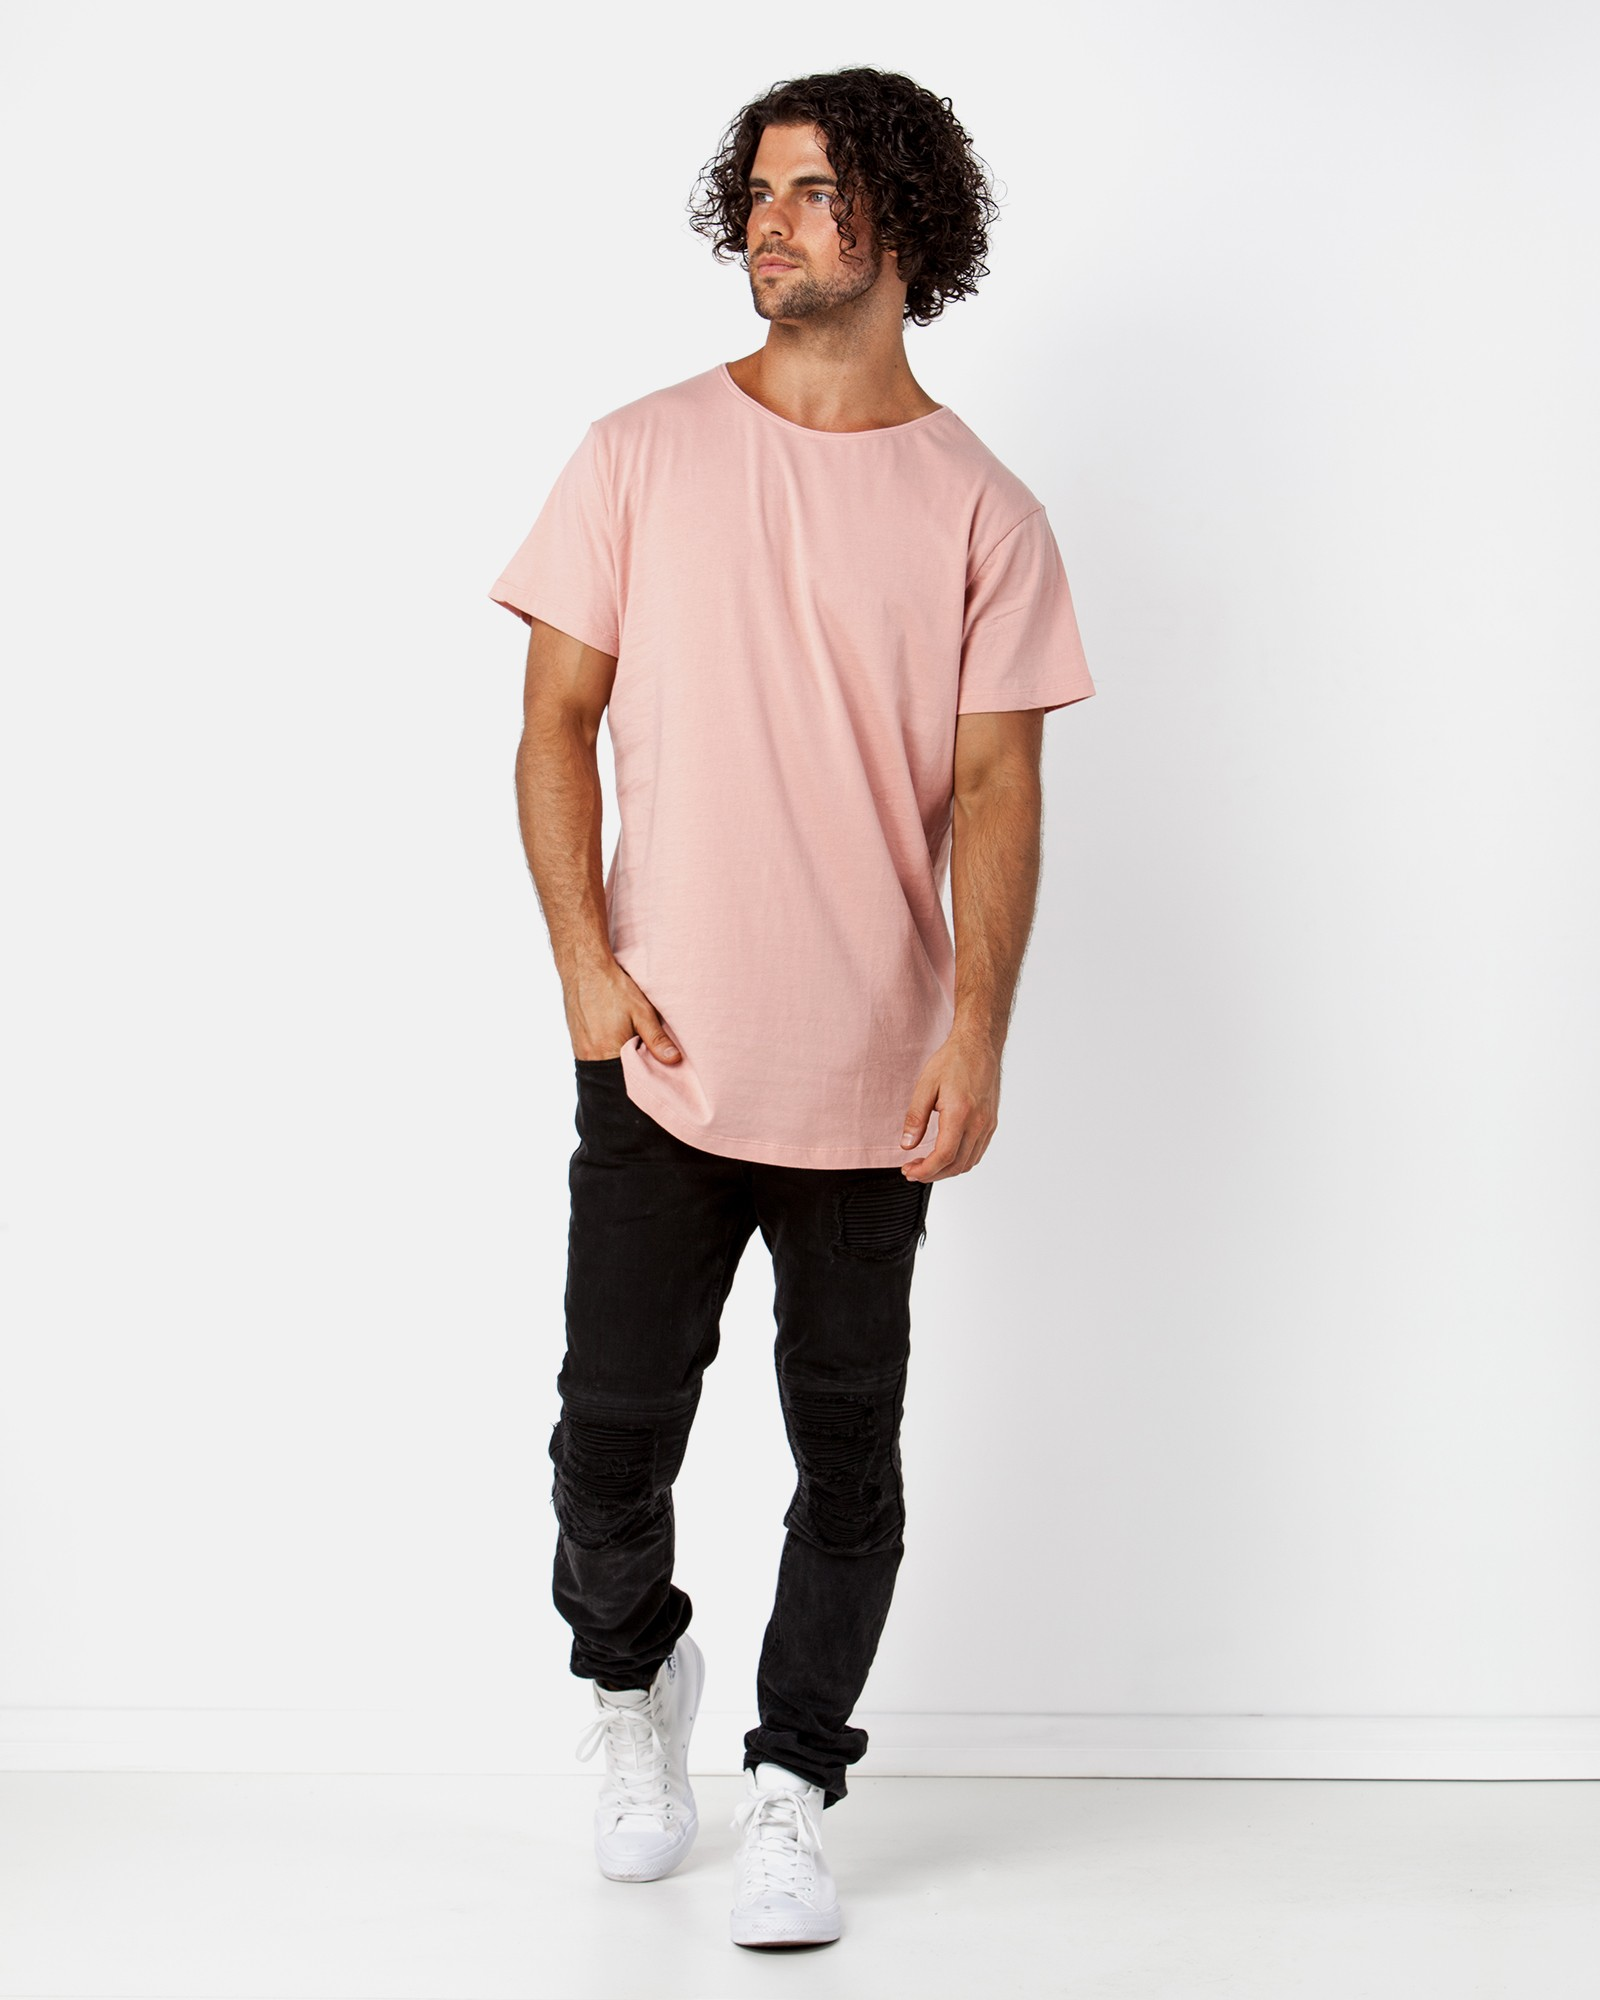 CLASSIC PINK TEE